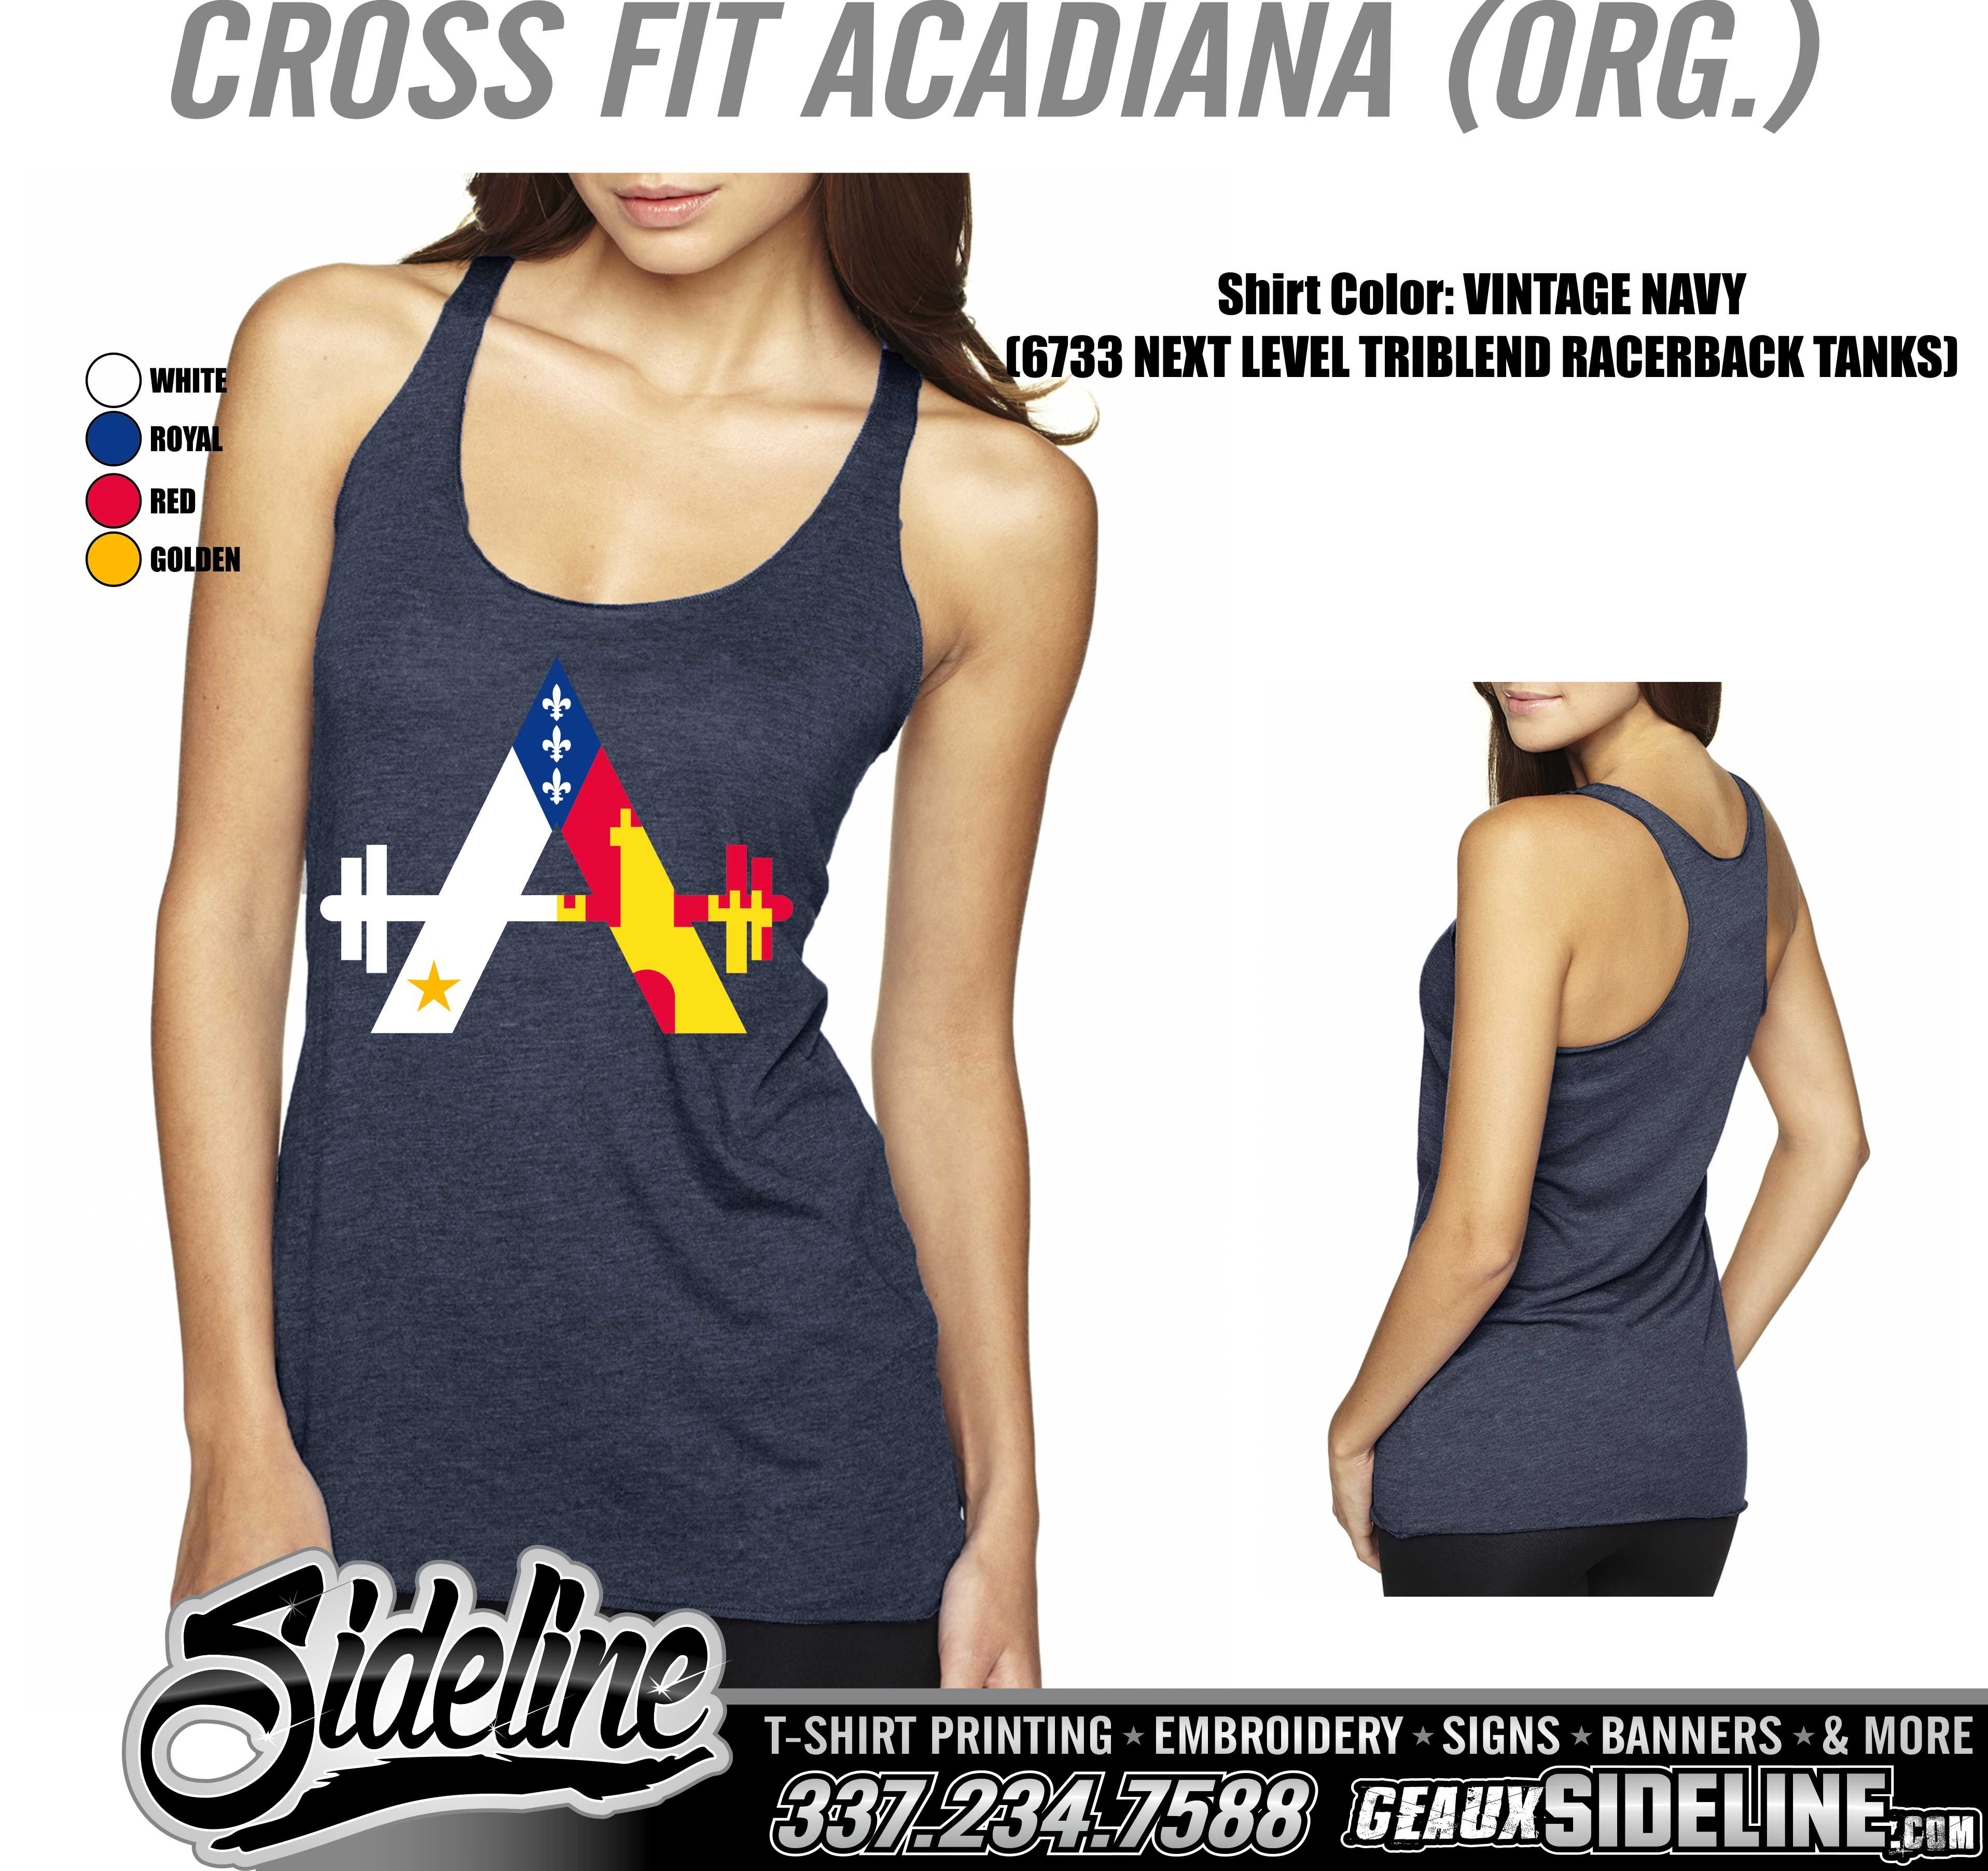 CROSS FIT ACADIANA (ORG.) - 6733 VINTAGE NAVY